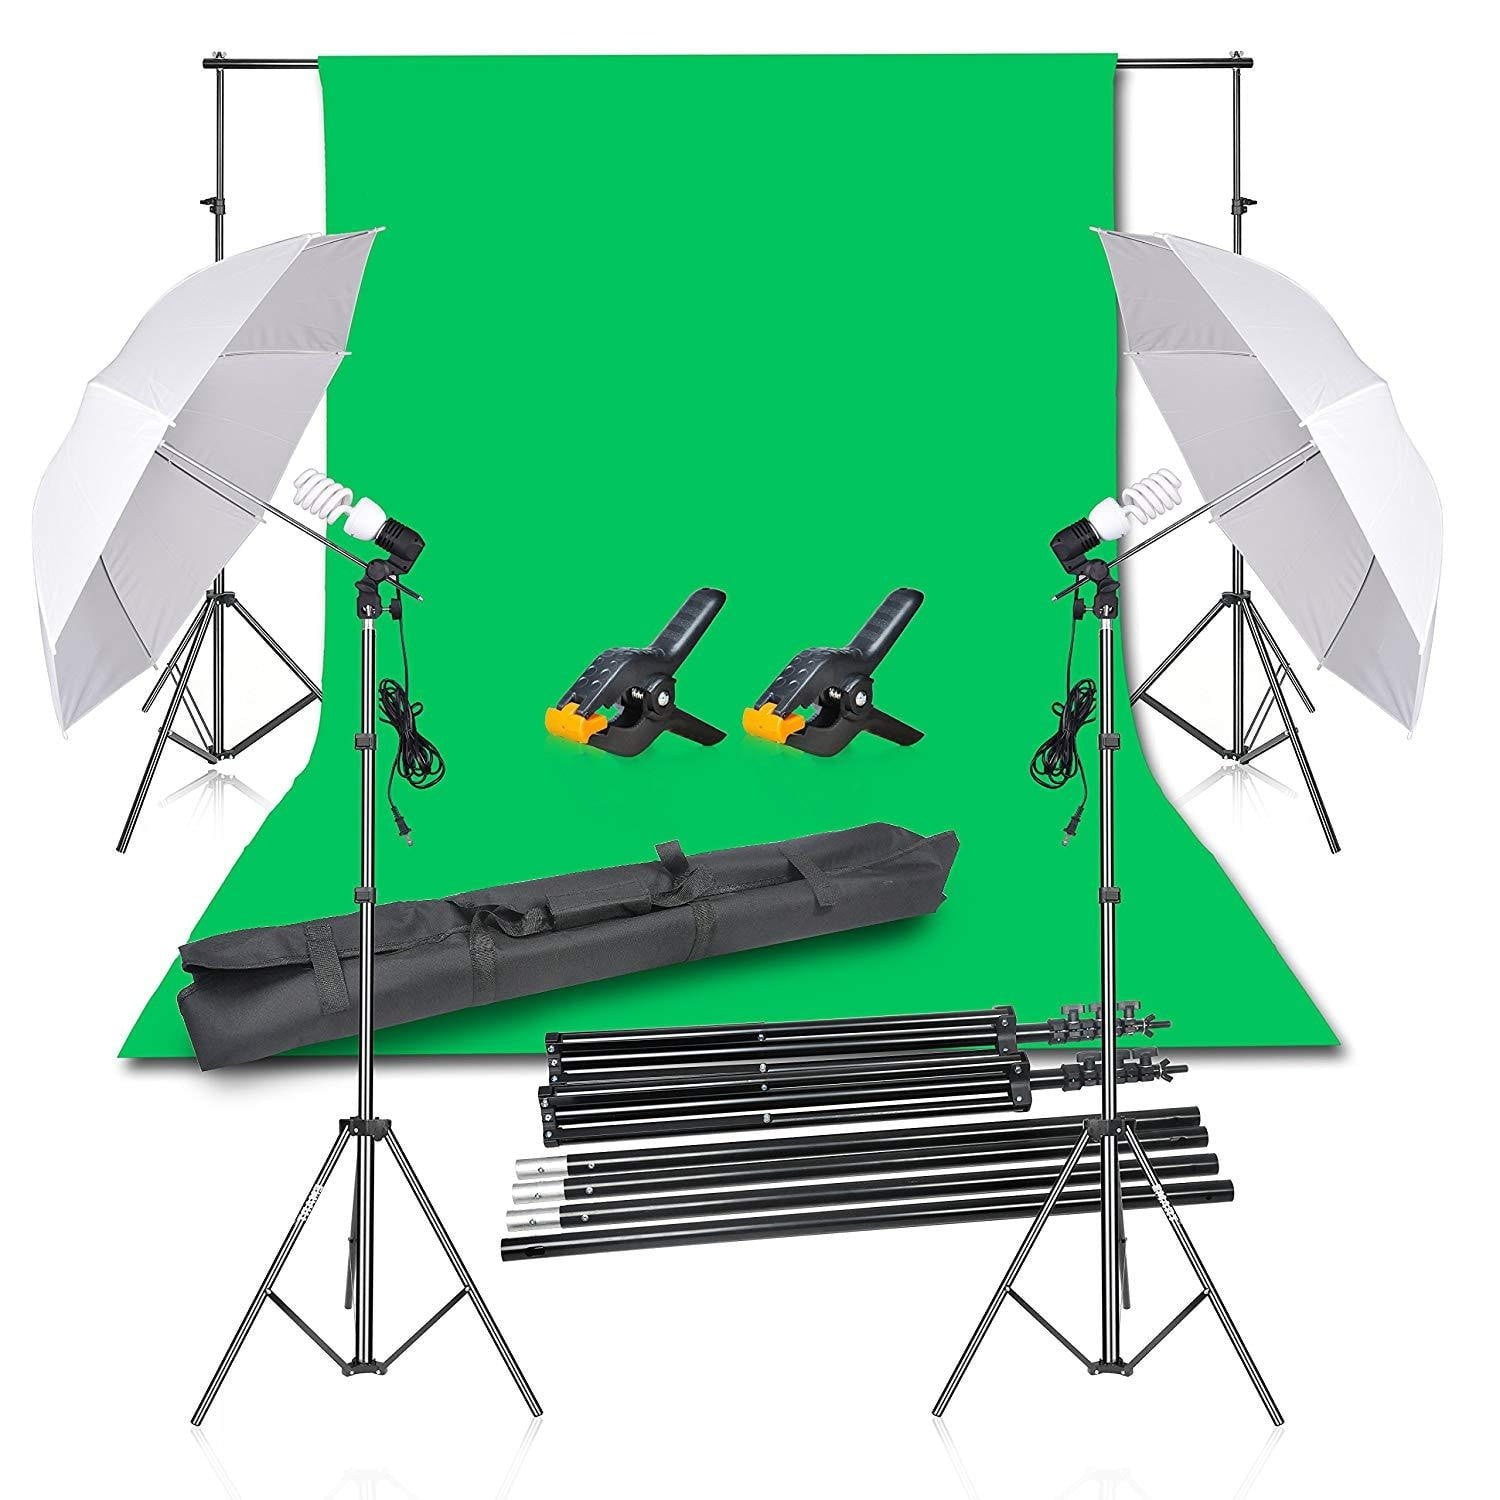 Emart Photography Backdrop Continuous Umbrella Studio Lighting Kit - EMART8